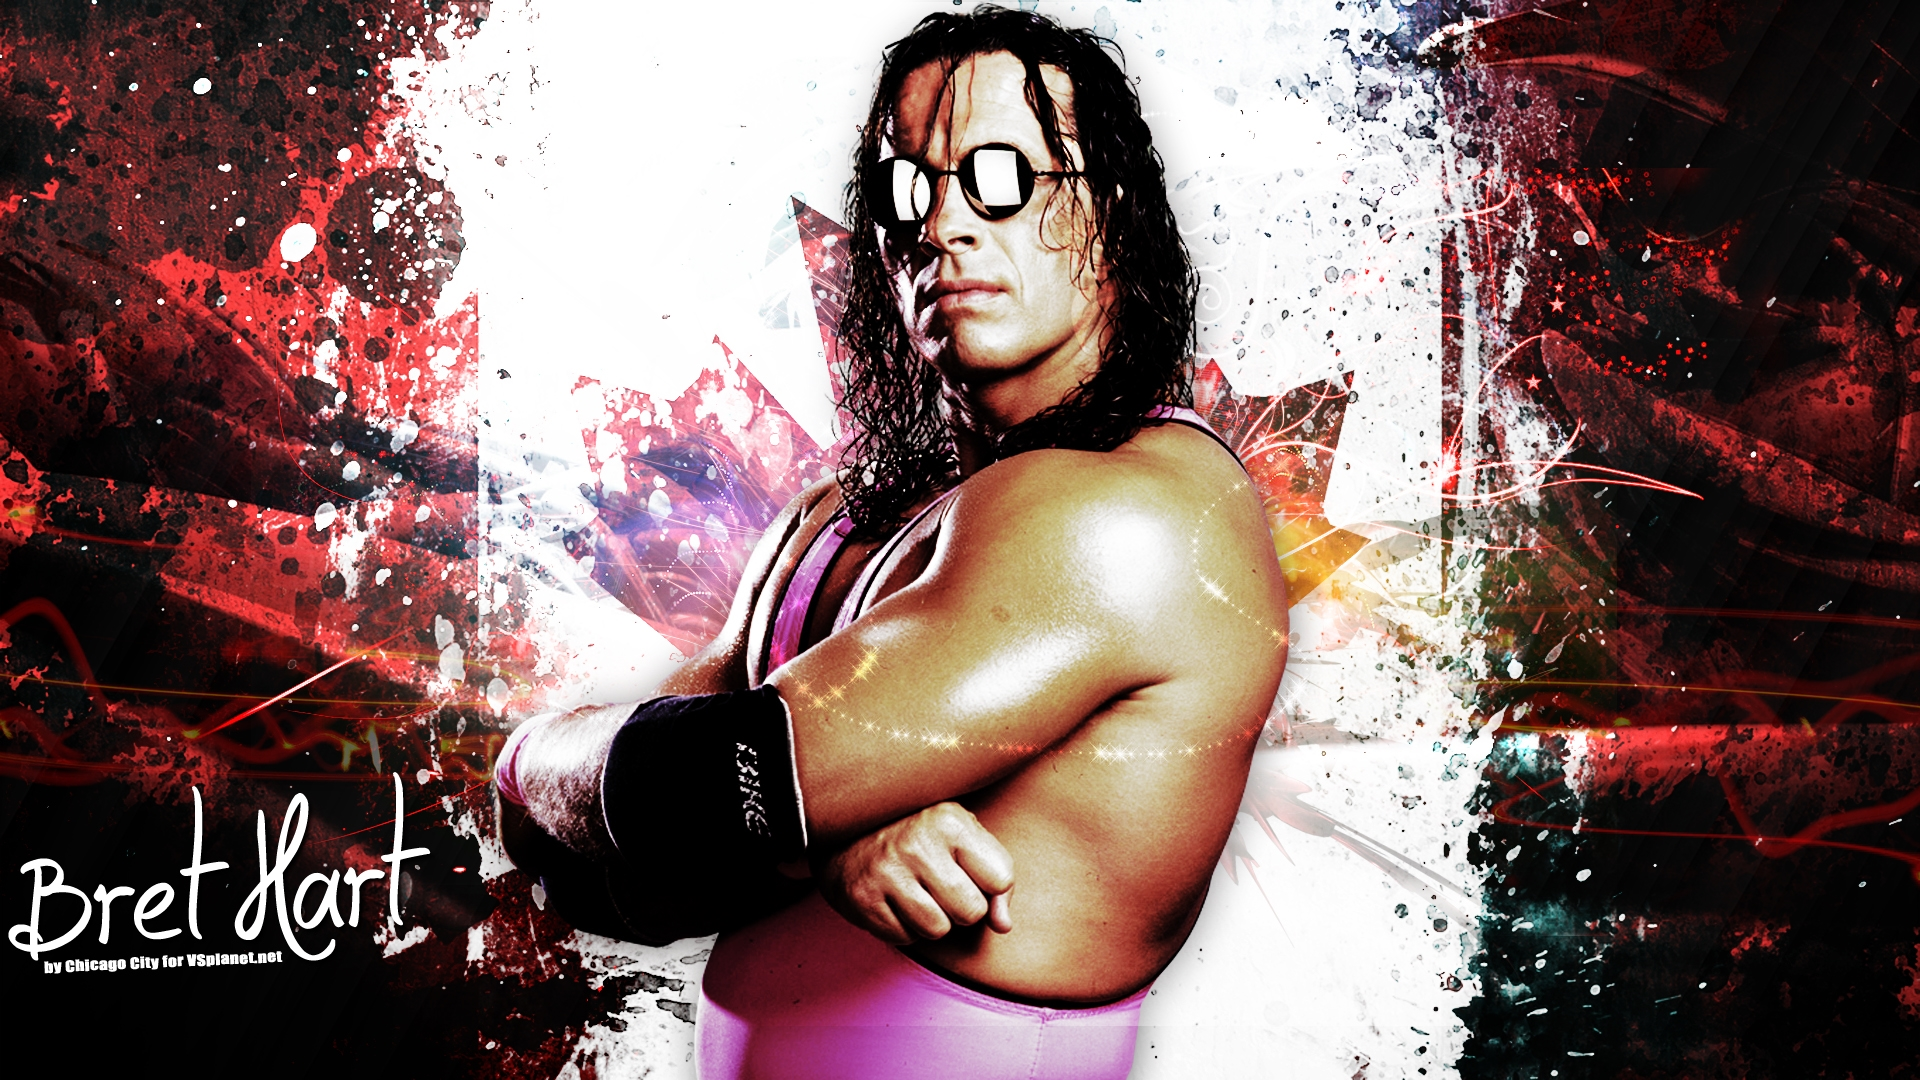 Bret Hart Hit Man Wwe Super Star